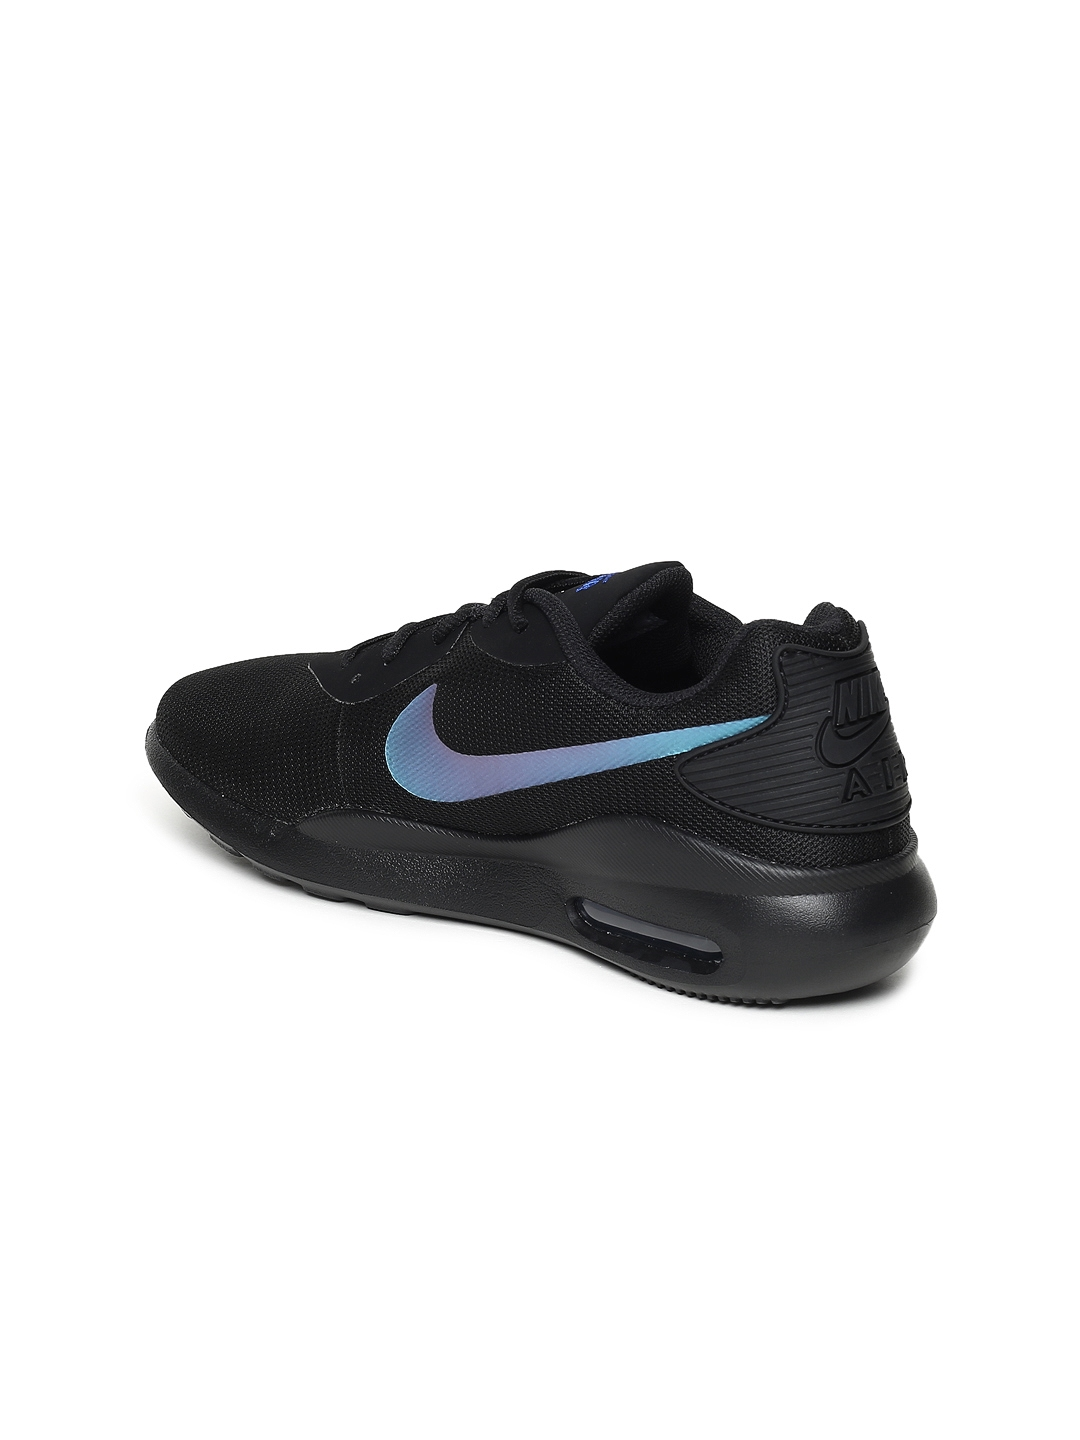 e237d7e9c2d2 Buy Nike Women Black AIR MAX OKETO Sneakers - Casual Shoes for Women ...